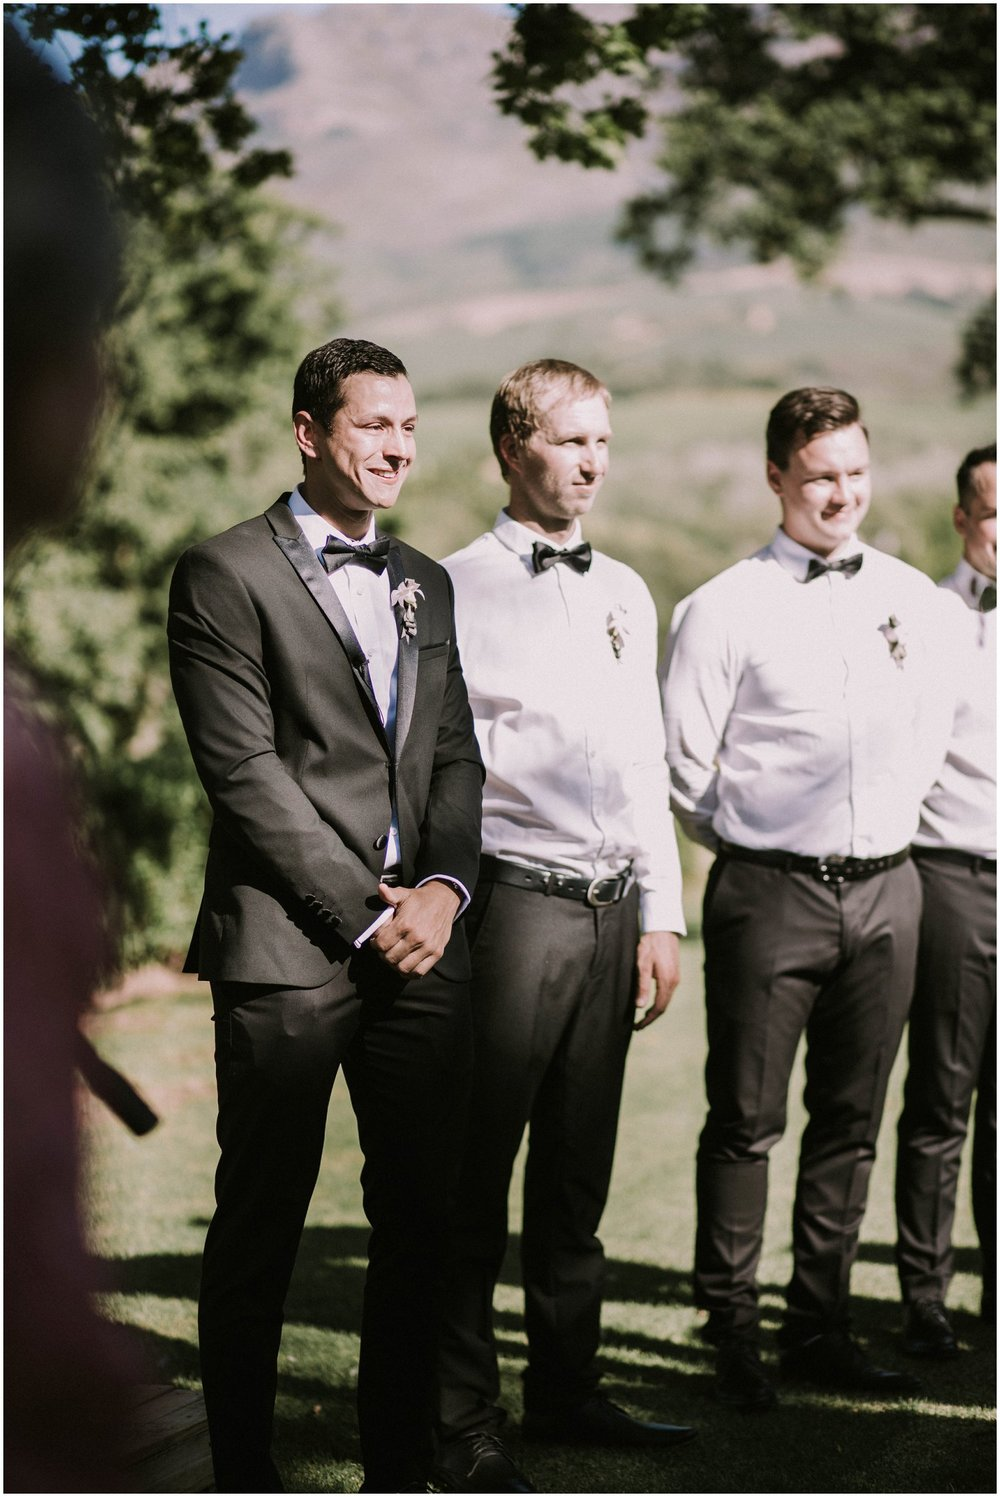 Top Artistic Documentary Wedding Photographer Cape Town South Africa Rue Kruger_0097.jpg